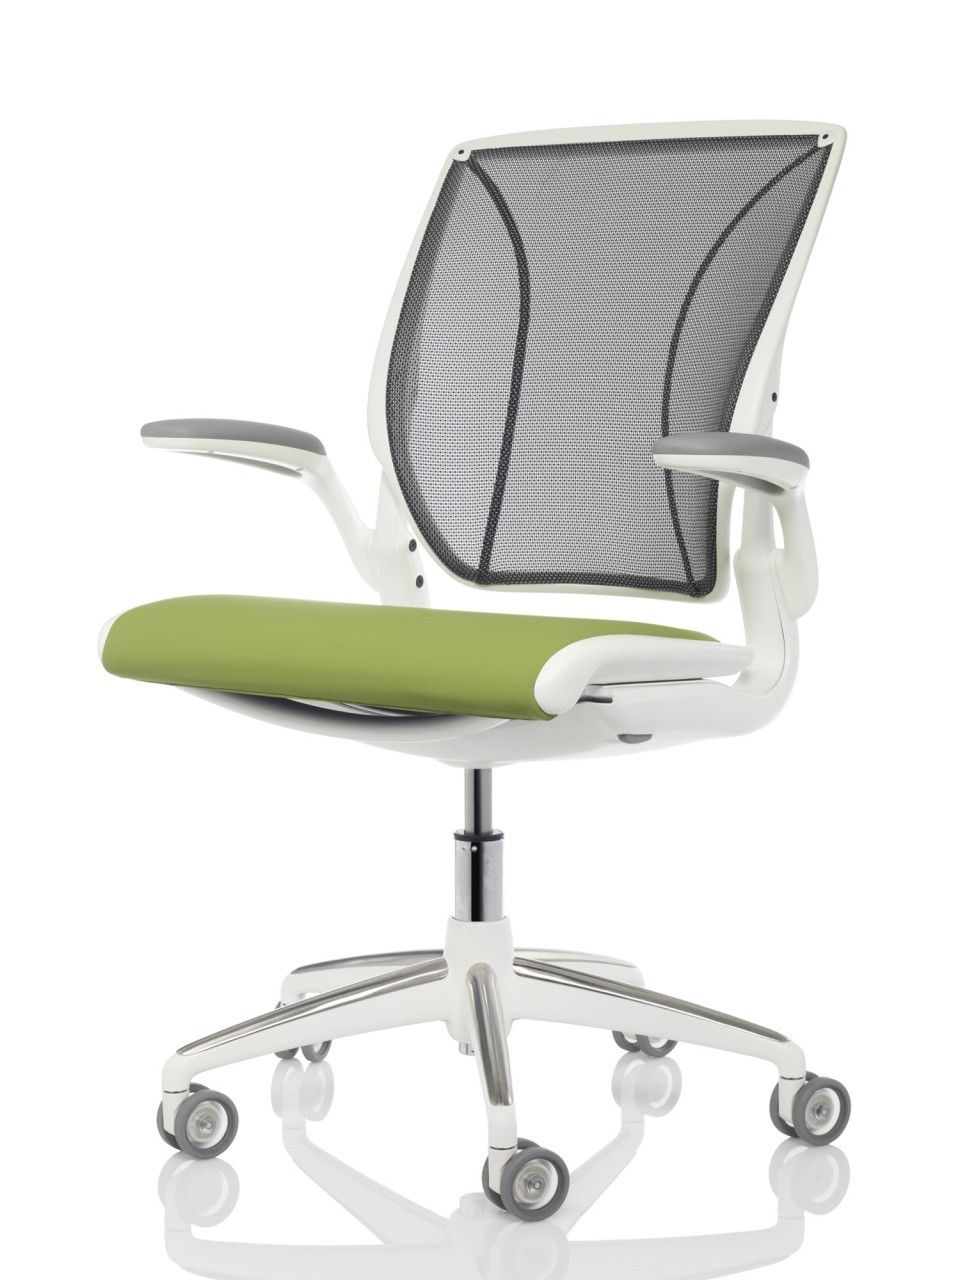 Feeling Like Boss With Human Scale Freedom Chair Office